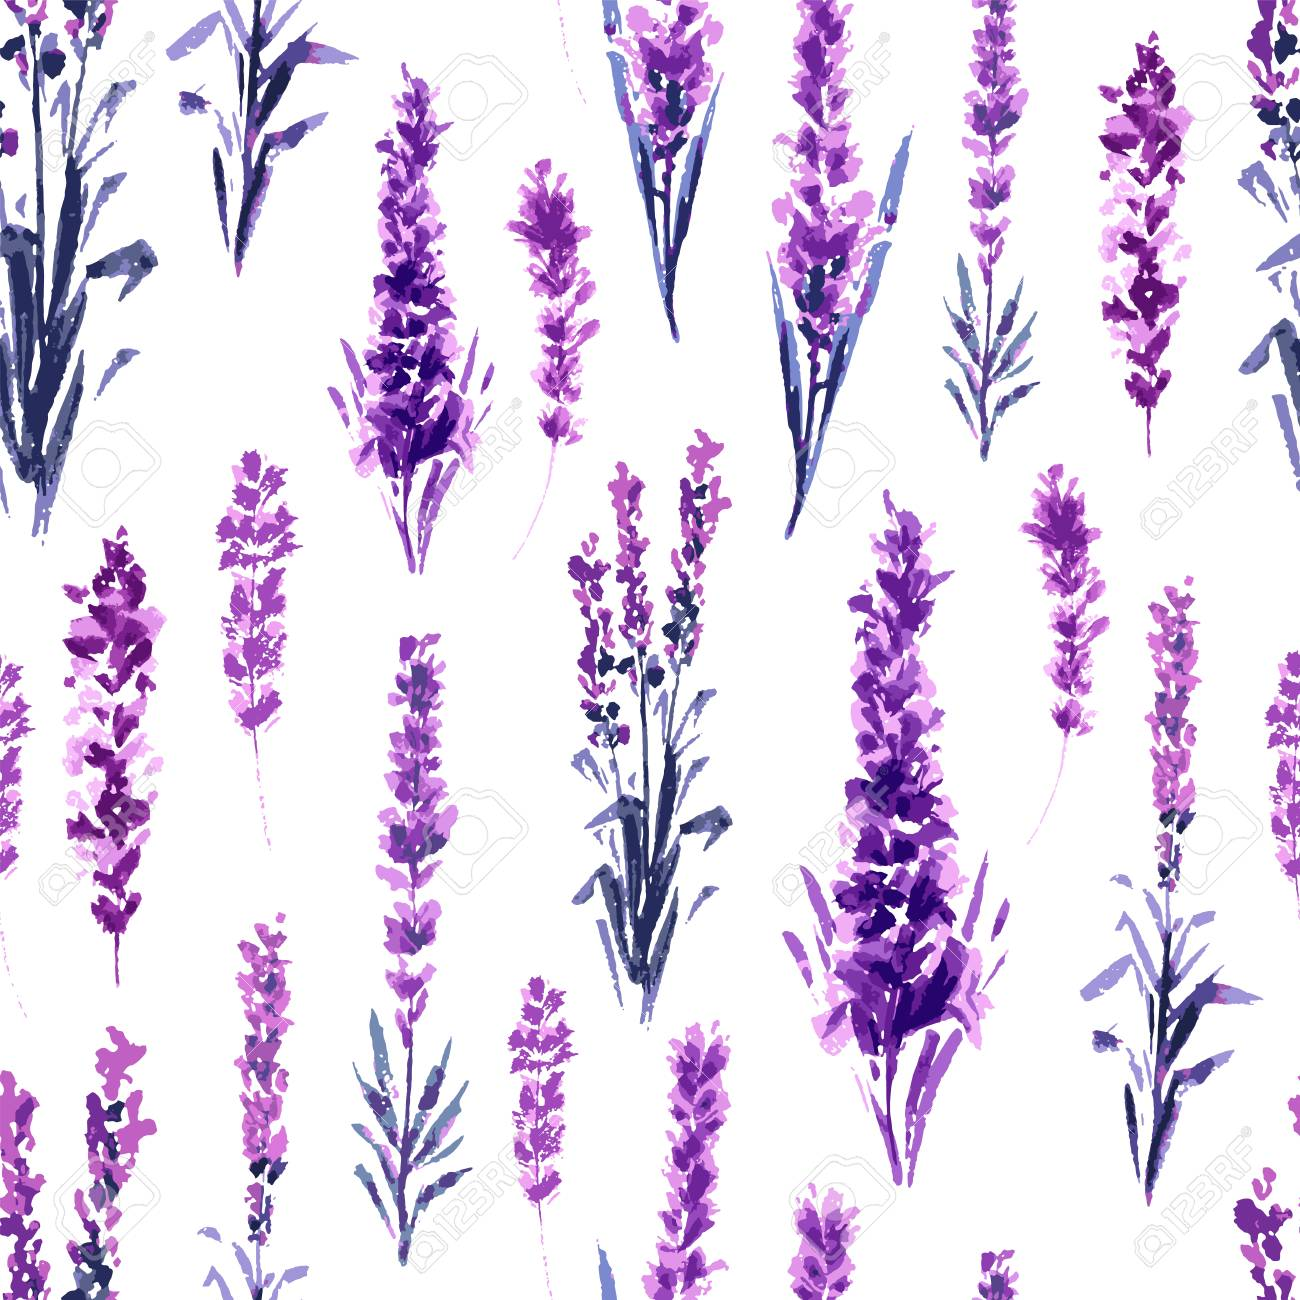 Lavender Field Seamless Pattern. Watercolor or Aquarelle Paintings of Provence Lavandula. Hand Drawn Tea Herbs Flower. Summer Blossom or Foliage of Garden Plant in Aquarelle. Nature and Perfume. - 122671553